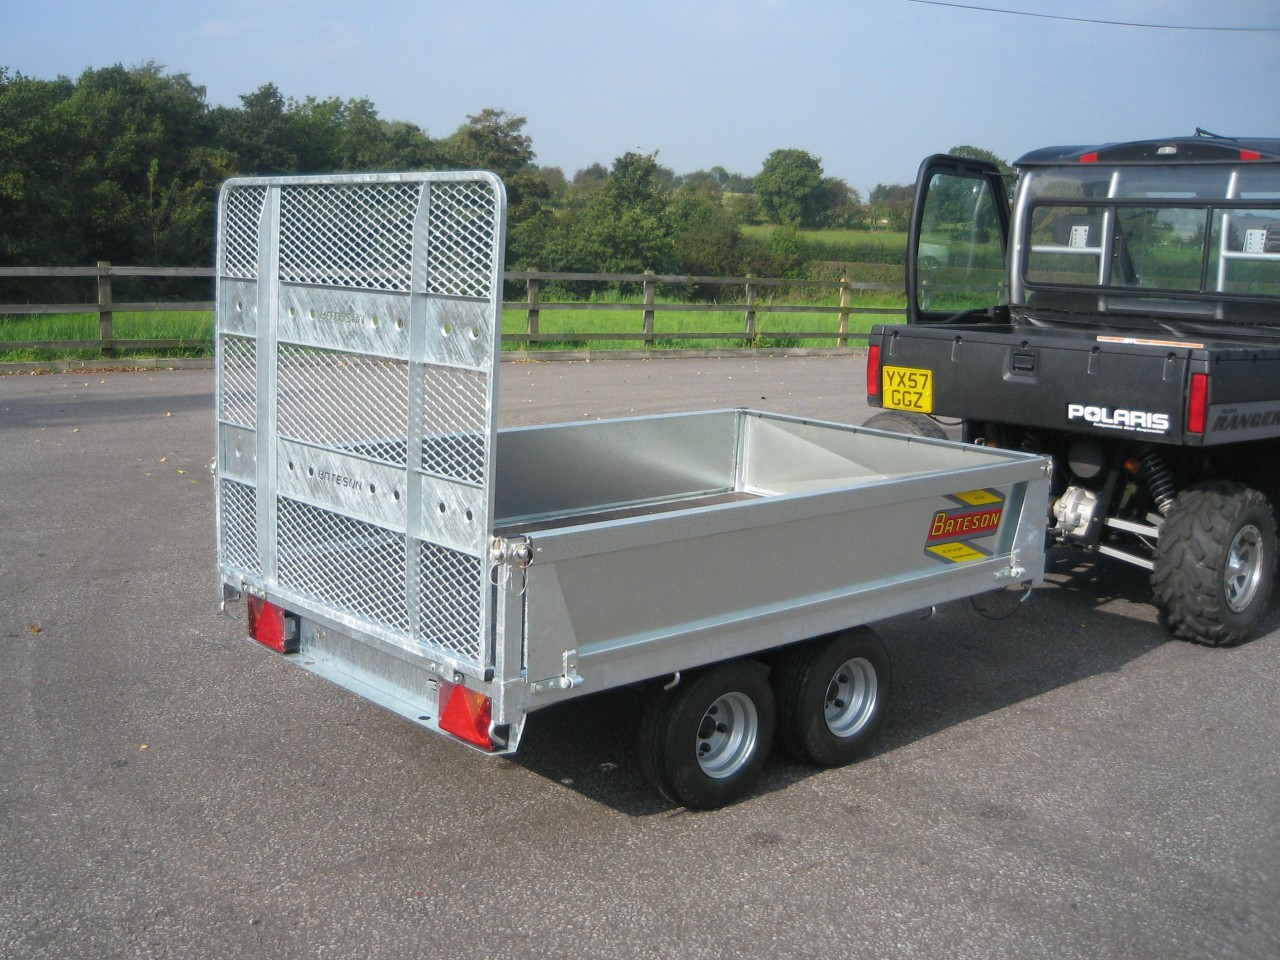 720 Unbraked Trailer Bateson Trailers